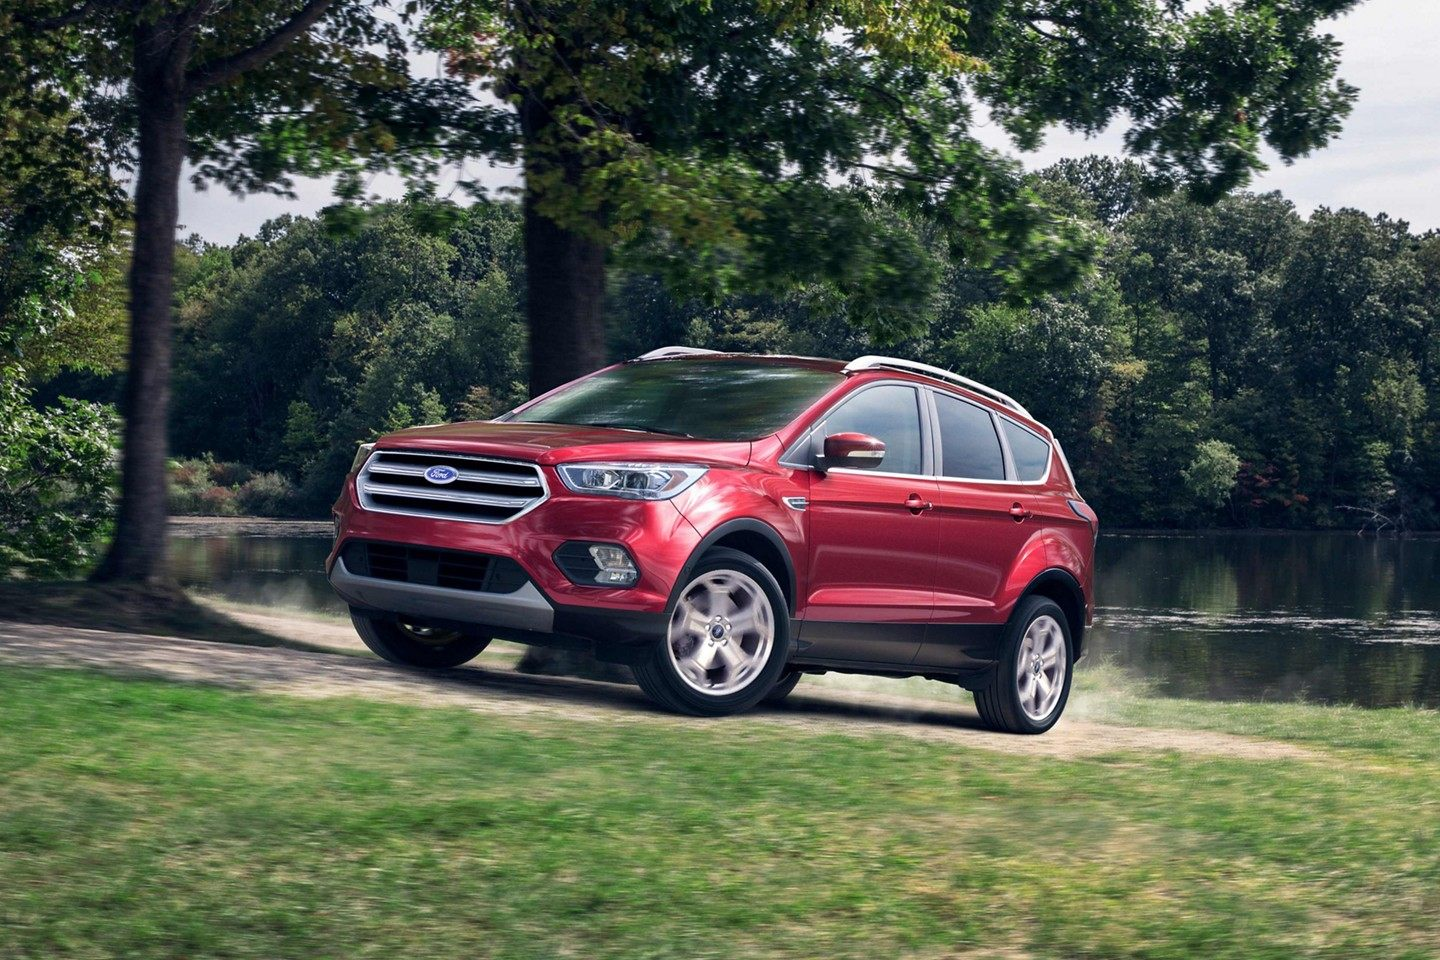 Take a Look at the Ford Escape